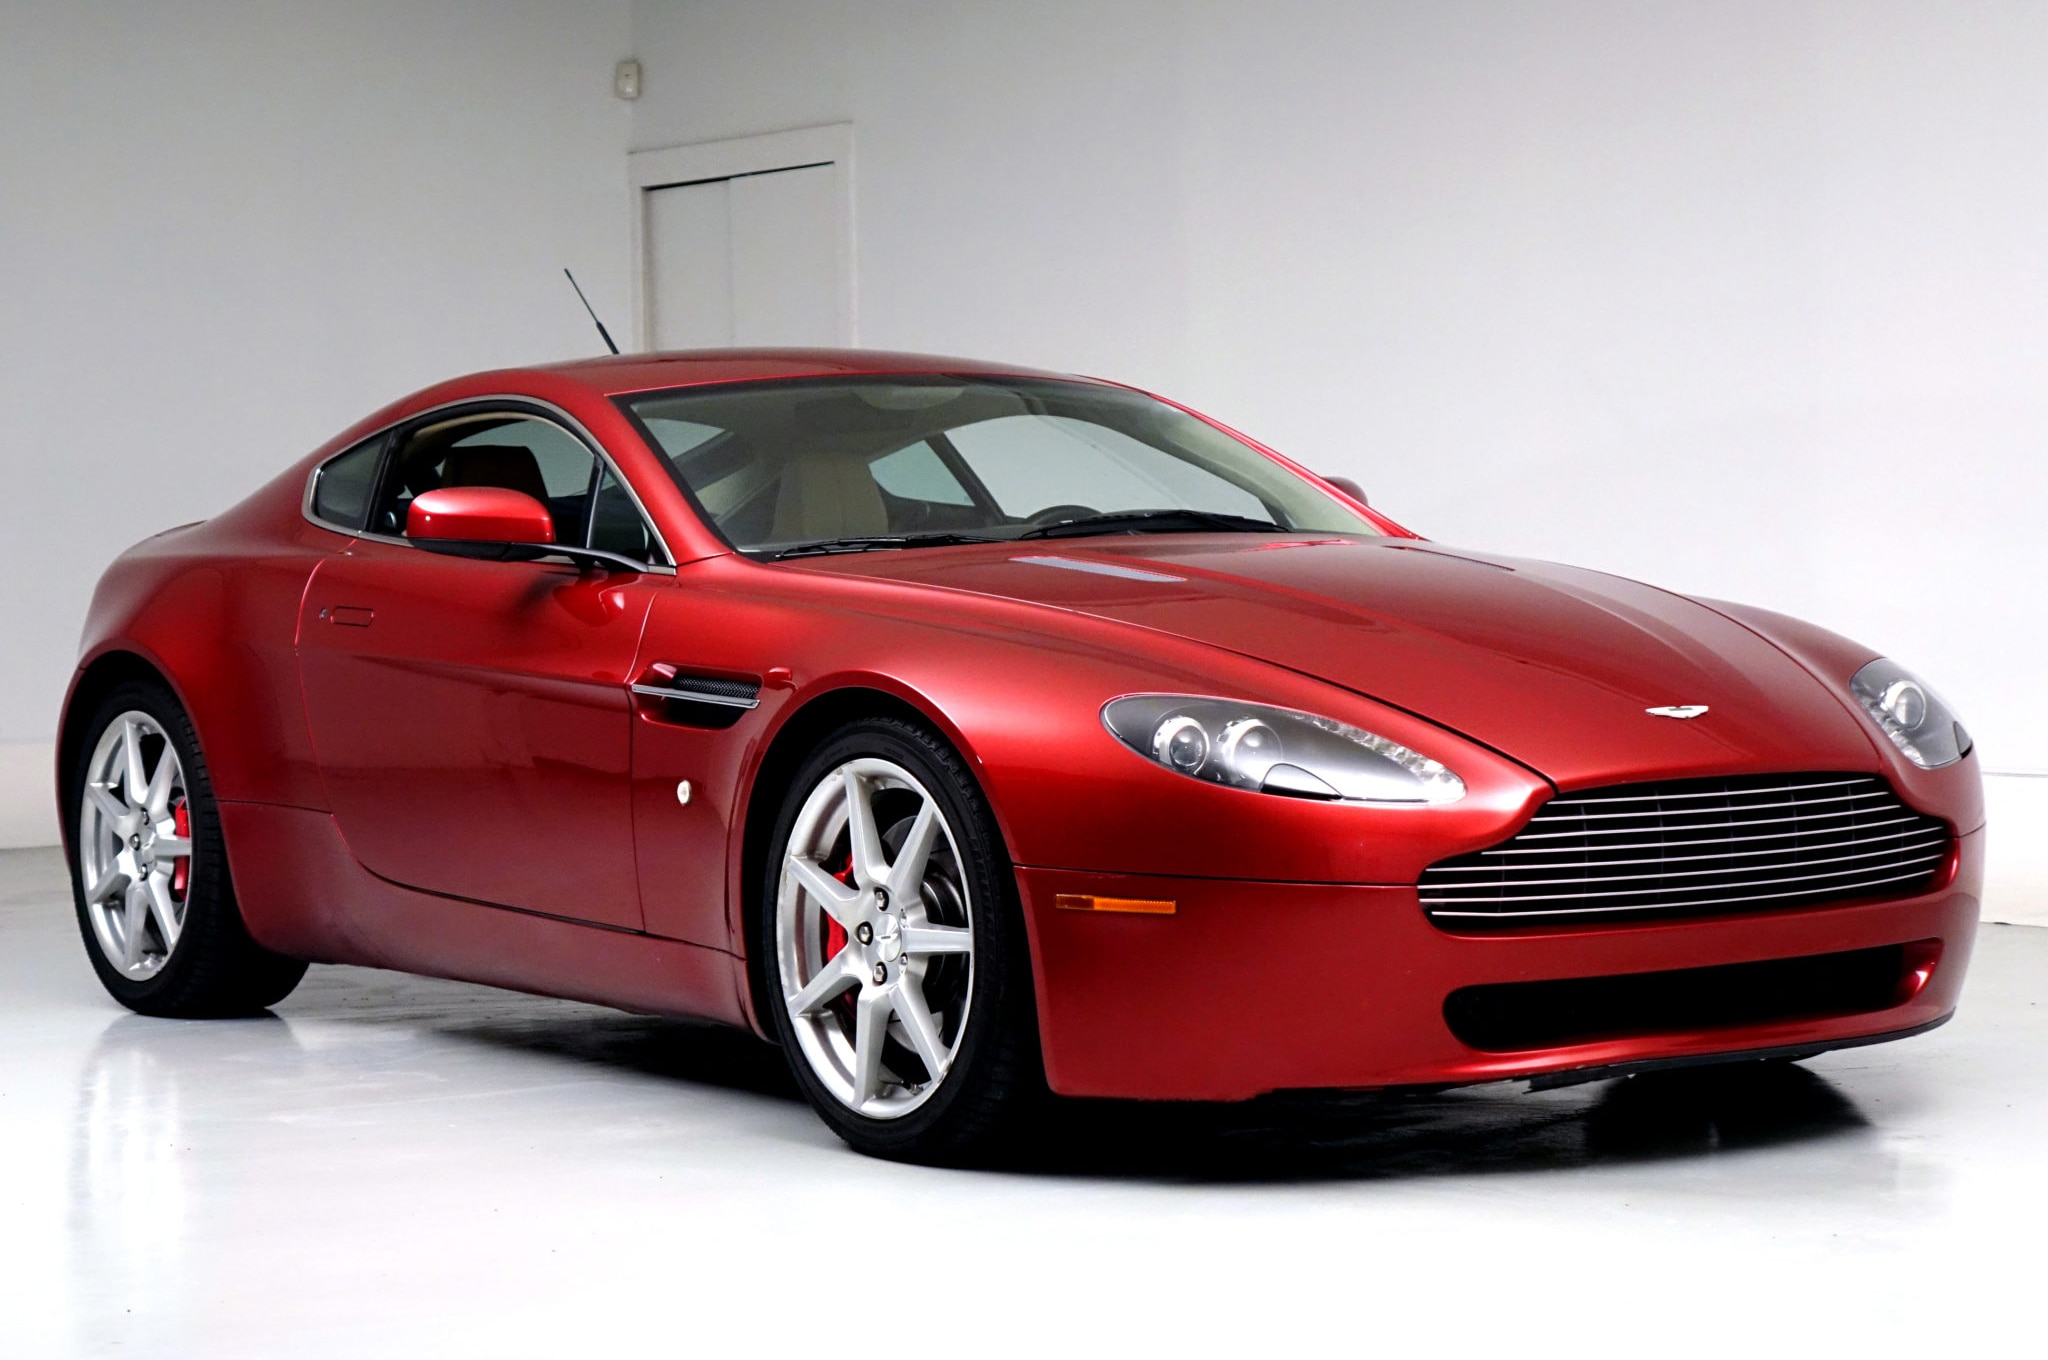 Budget Bond Look Rich For Less In This 36 000 Aston Martin V8 Vantage